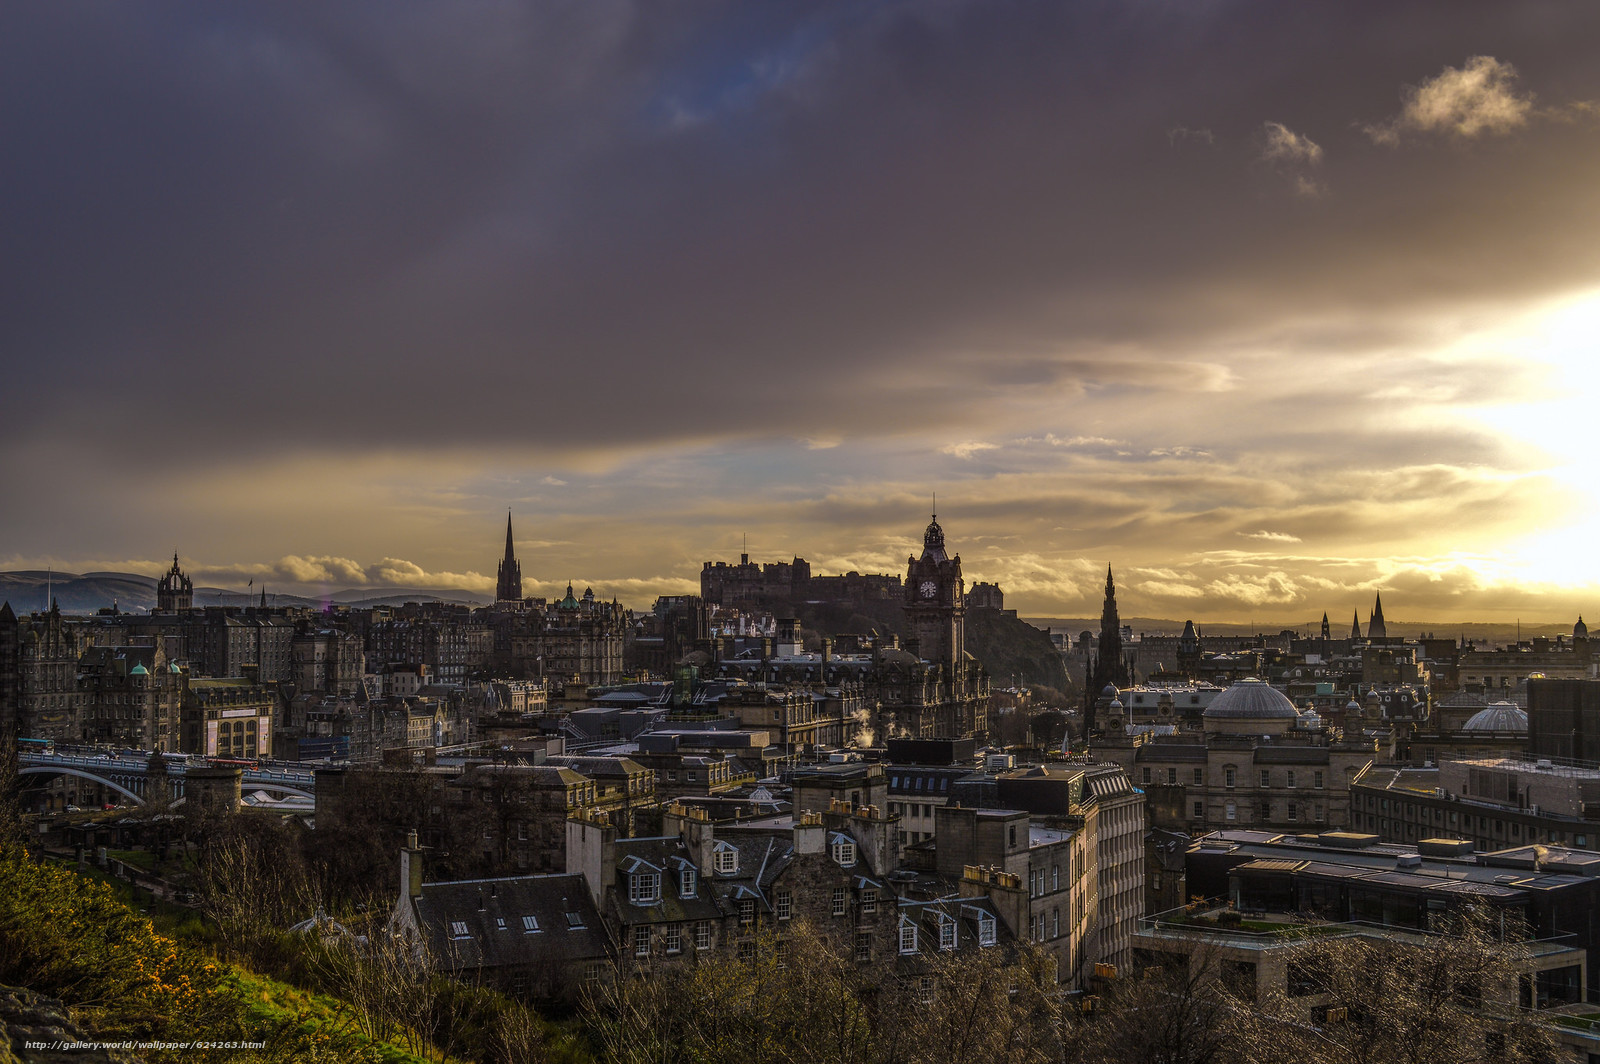 edinburgh scotland wallpaper - photo #20